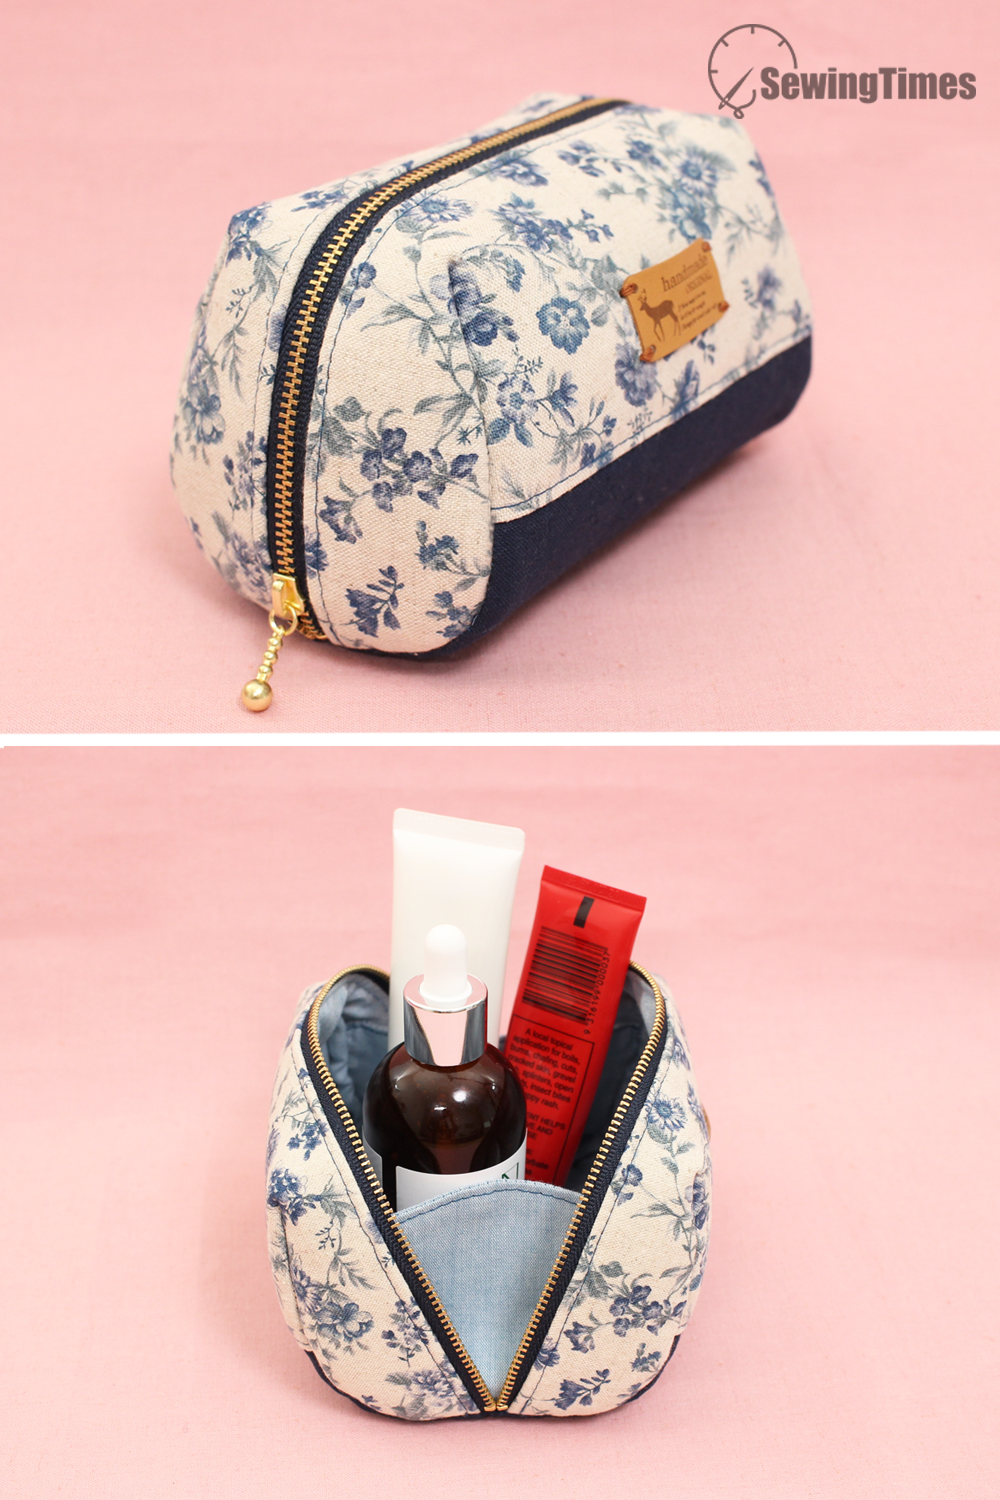 Diy Pouch Bag Tutorial In 2020 Diy Pouch Bag Diy Makeup Bag Sewing Makeup Bag